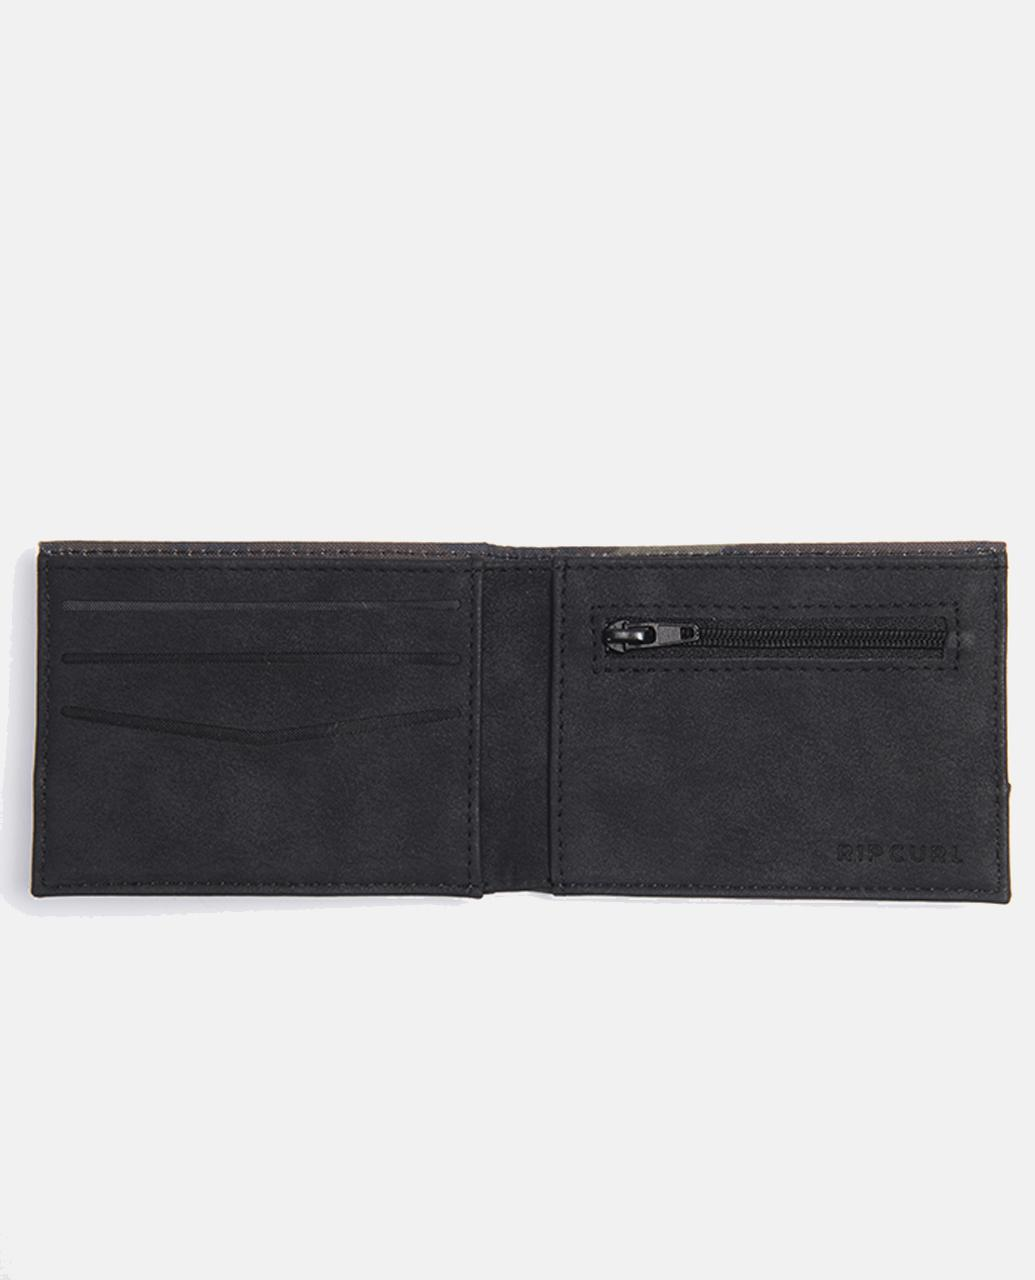 CARTERA RIP CURL RAPTURED PU SLIM WALLET